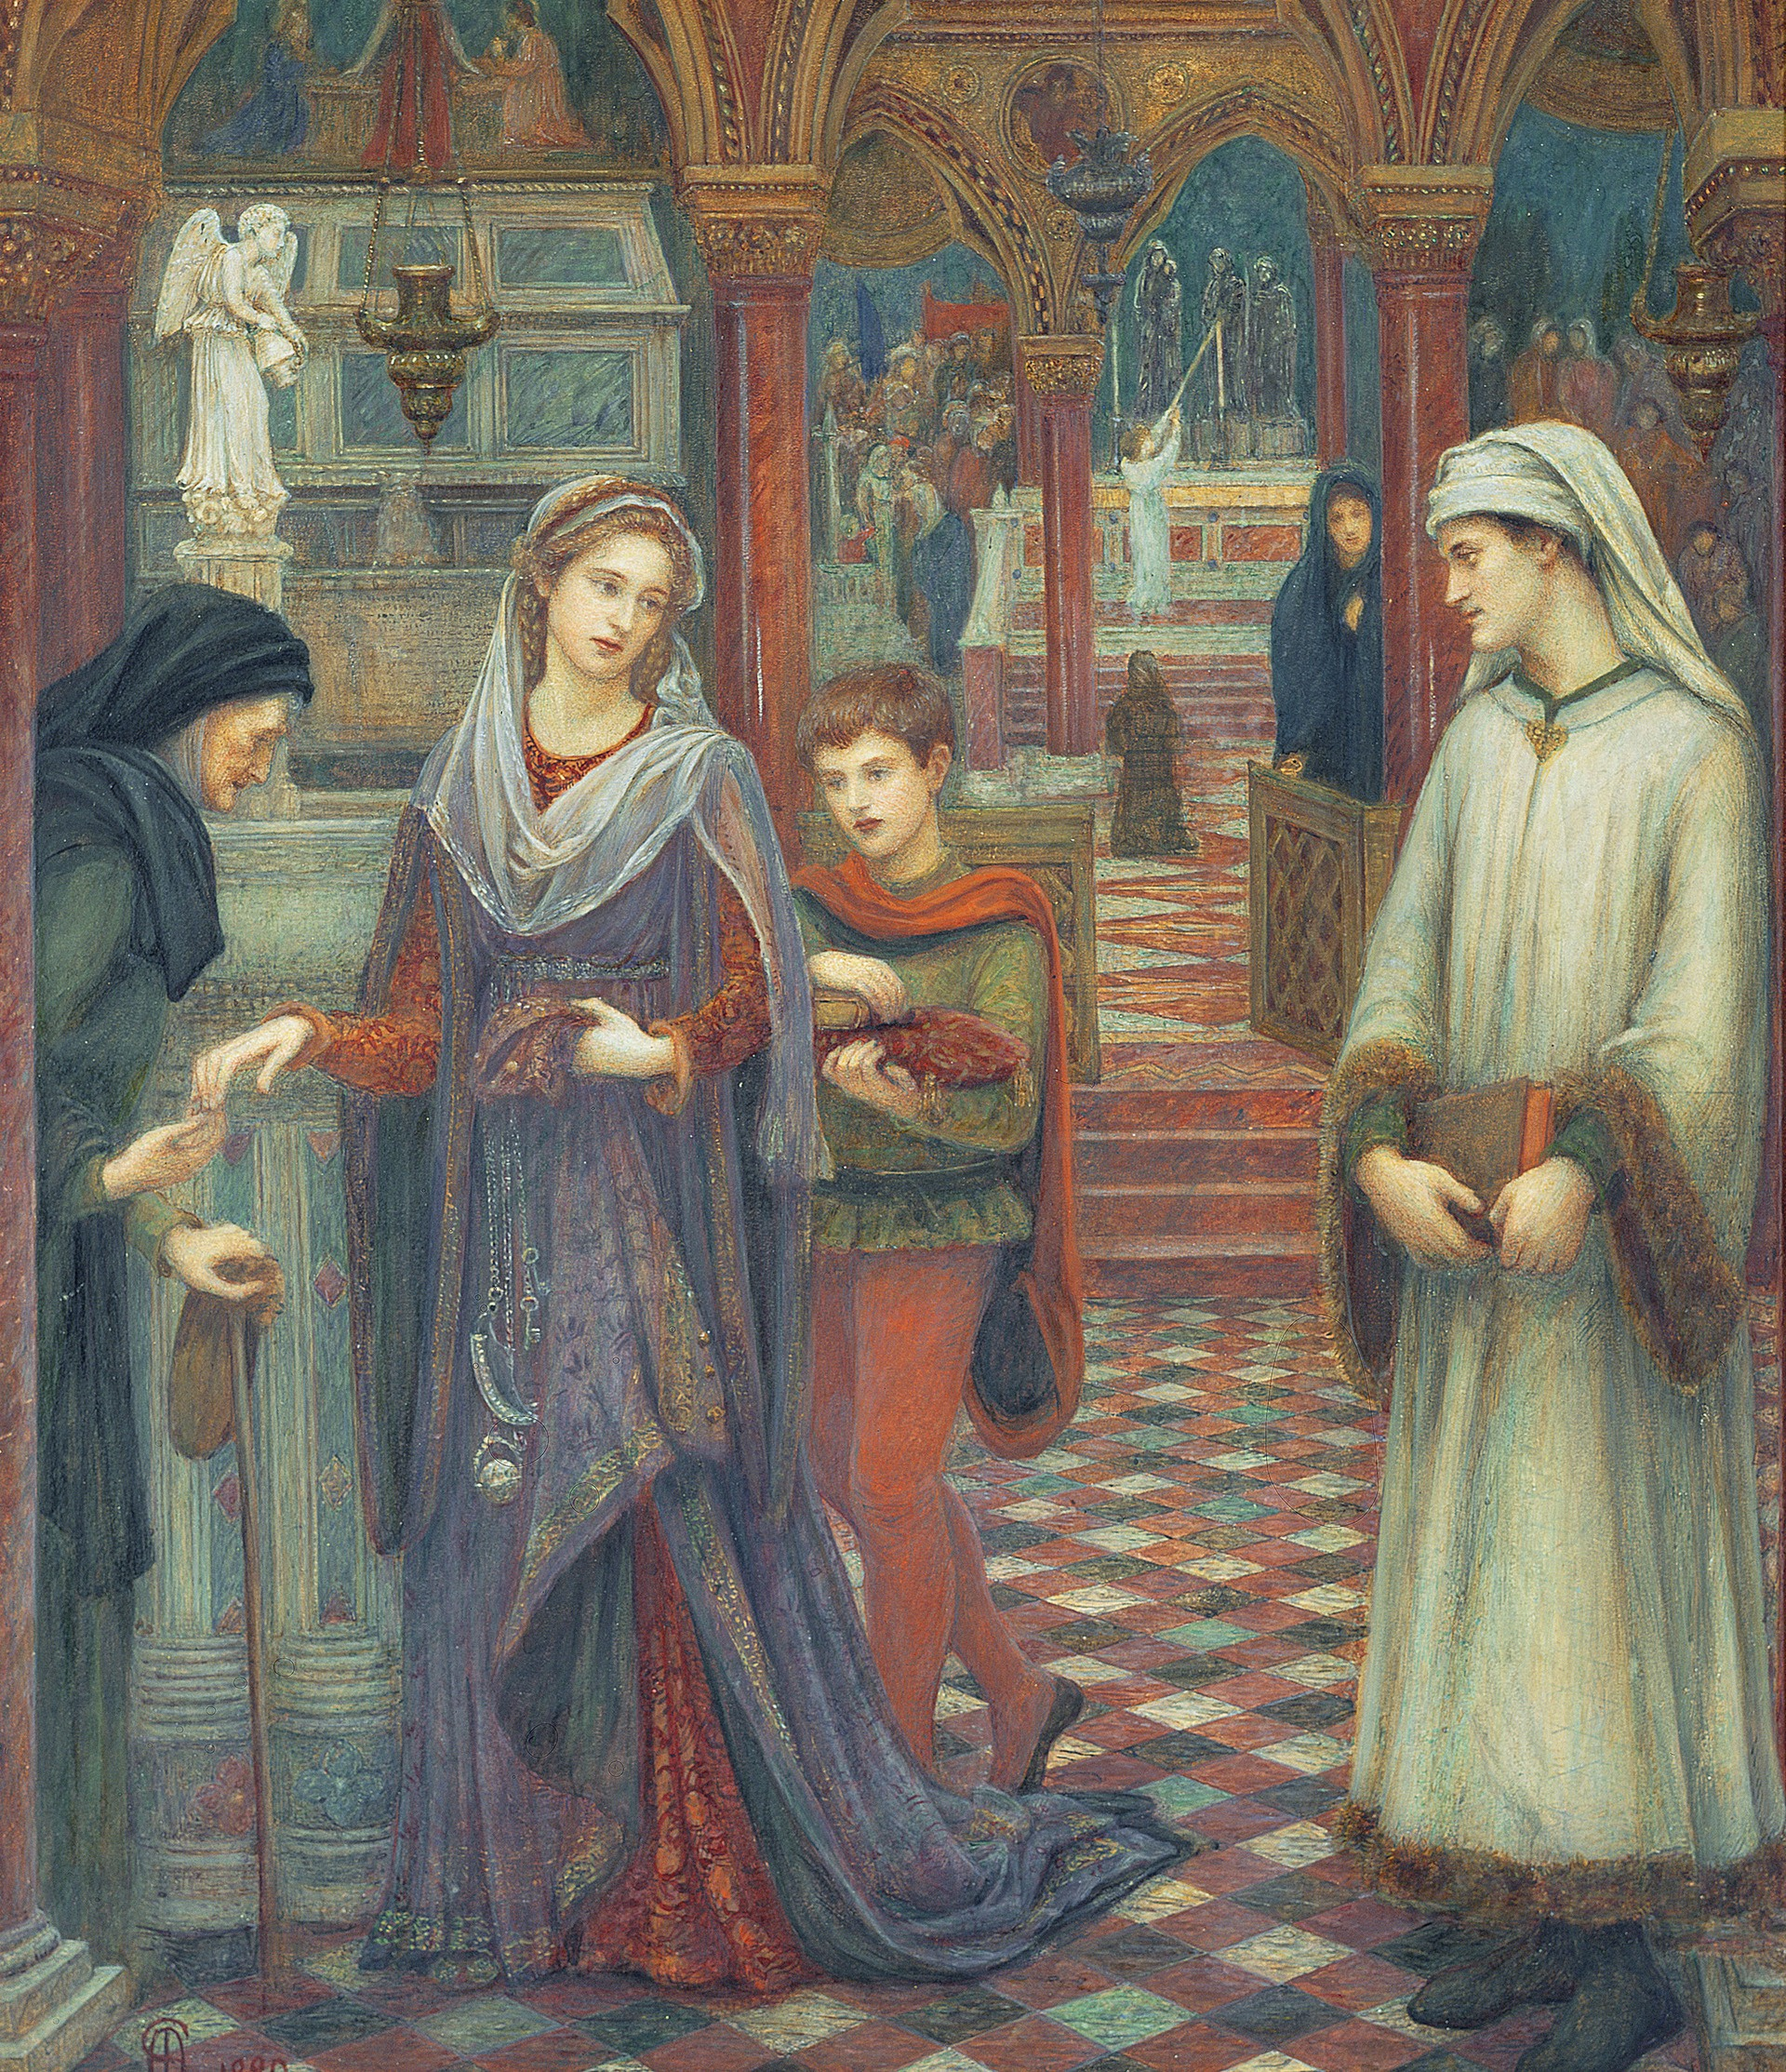 Marie Spartali Stillman - The First Meeting of Petrarch and Laura